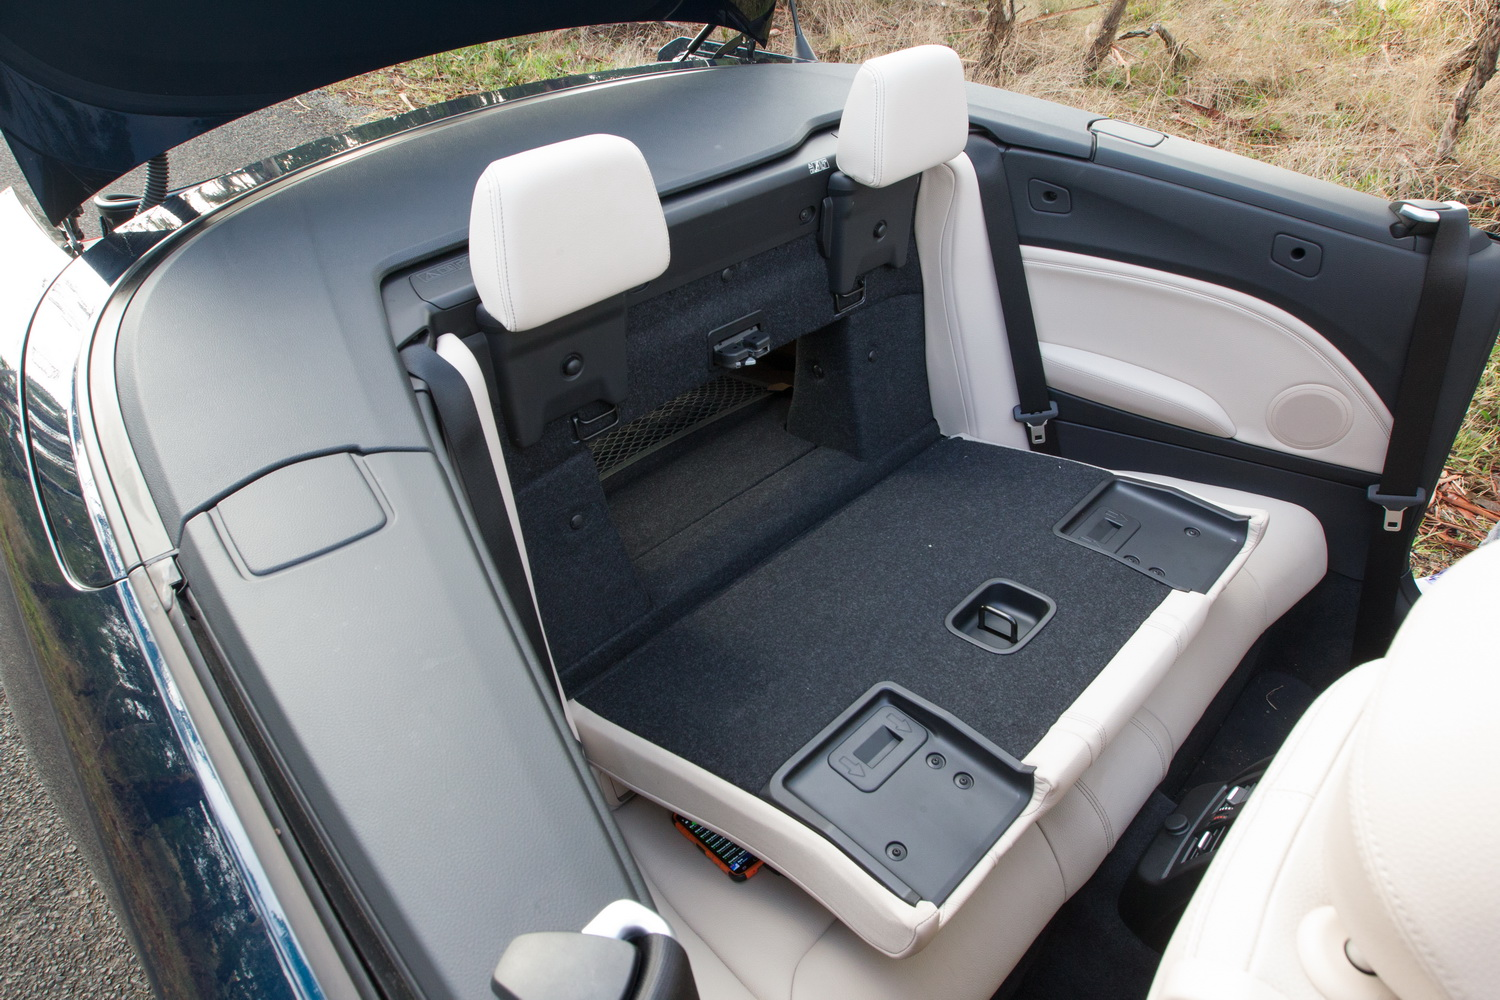 2015 hyundai sonata do the seats fold down autos post. Black Bedroom Furniture Sets. Home Design Ideas